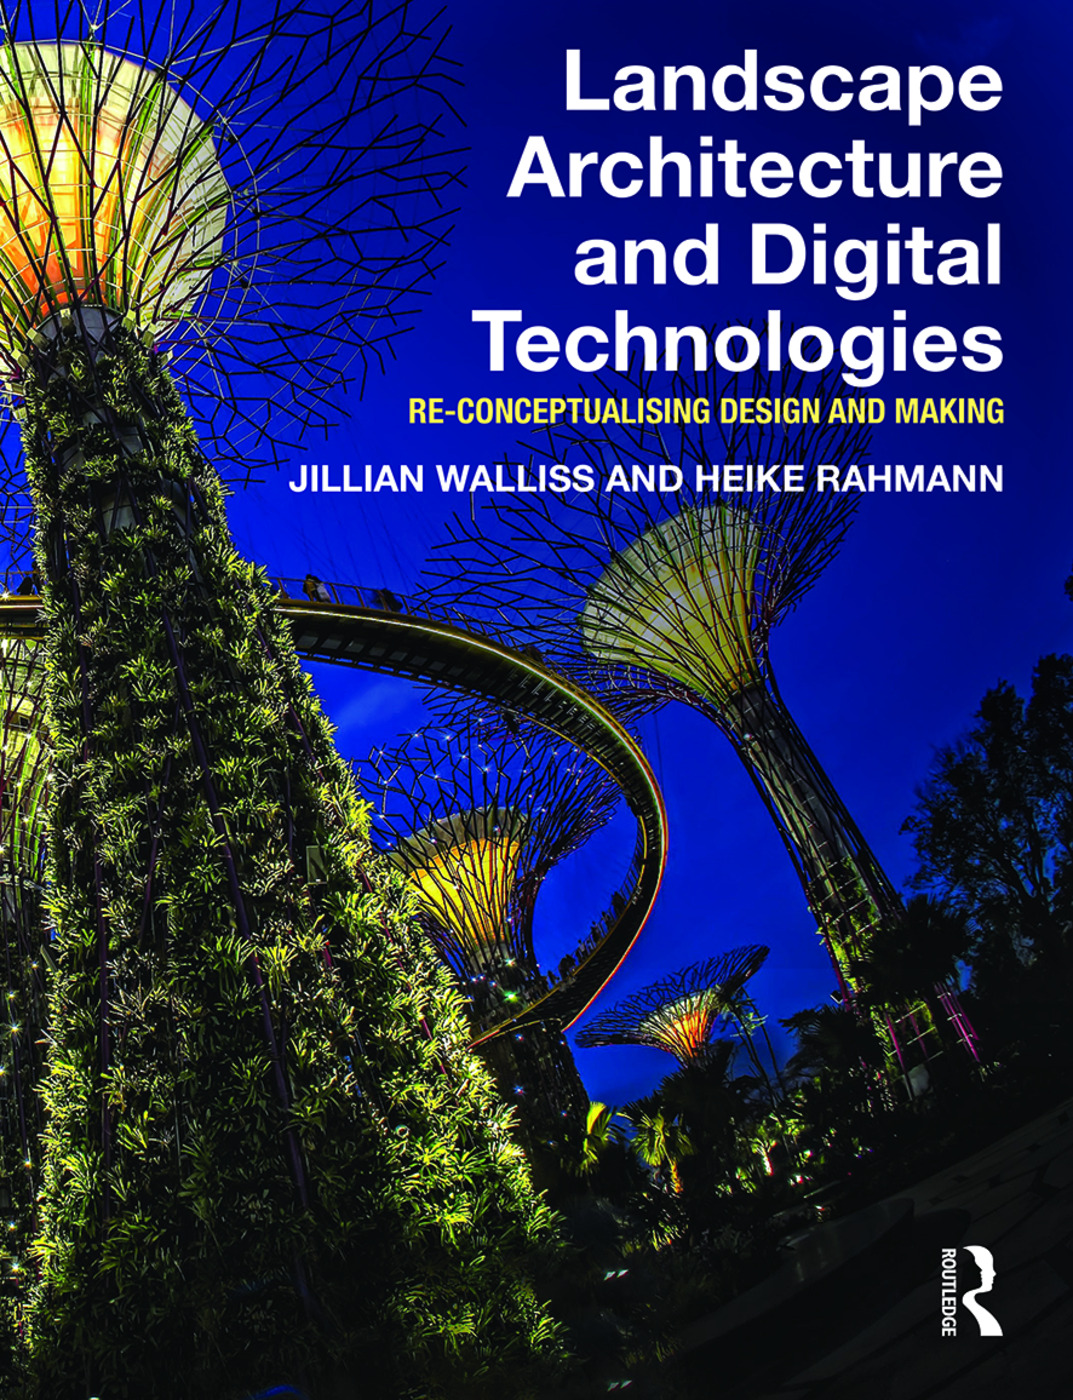 Landscape Architecture and Digital Technologies: Re-conceptualising design and making book cover